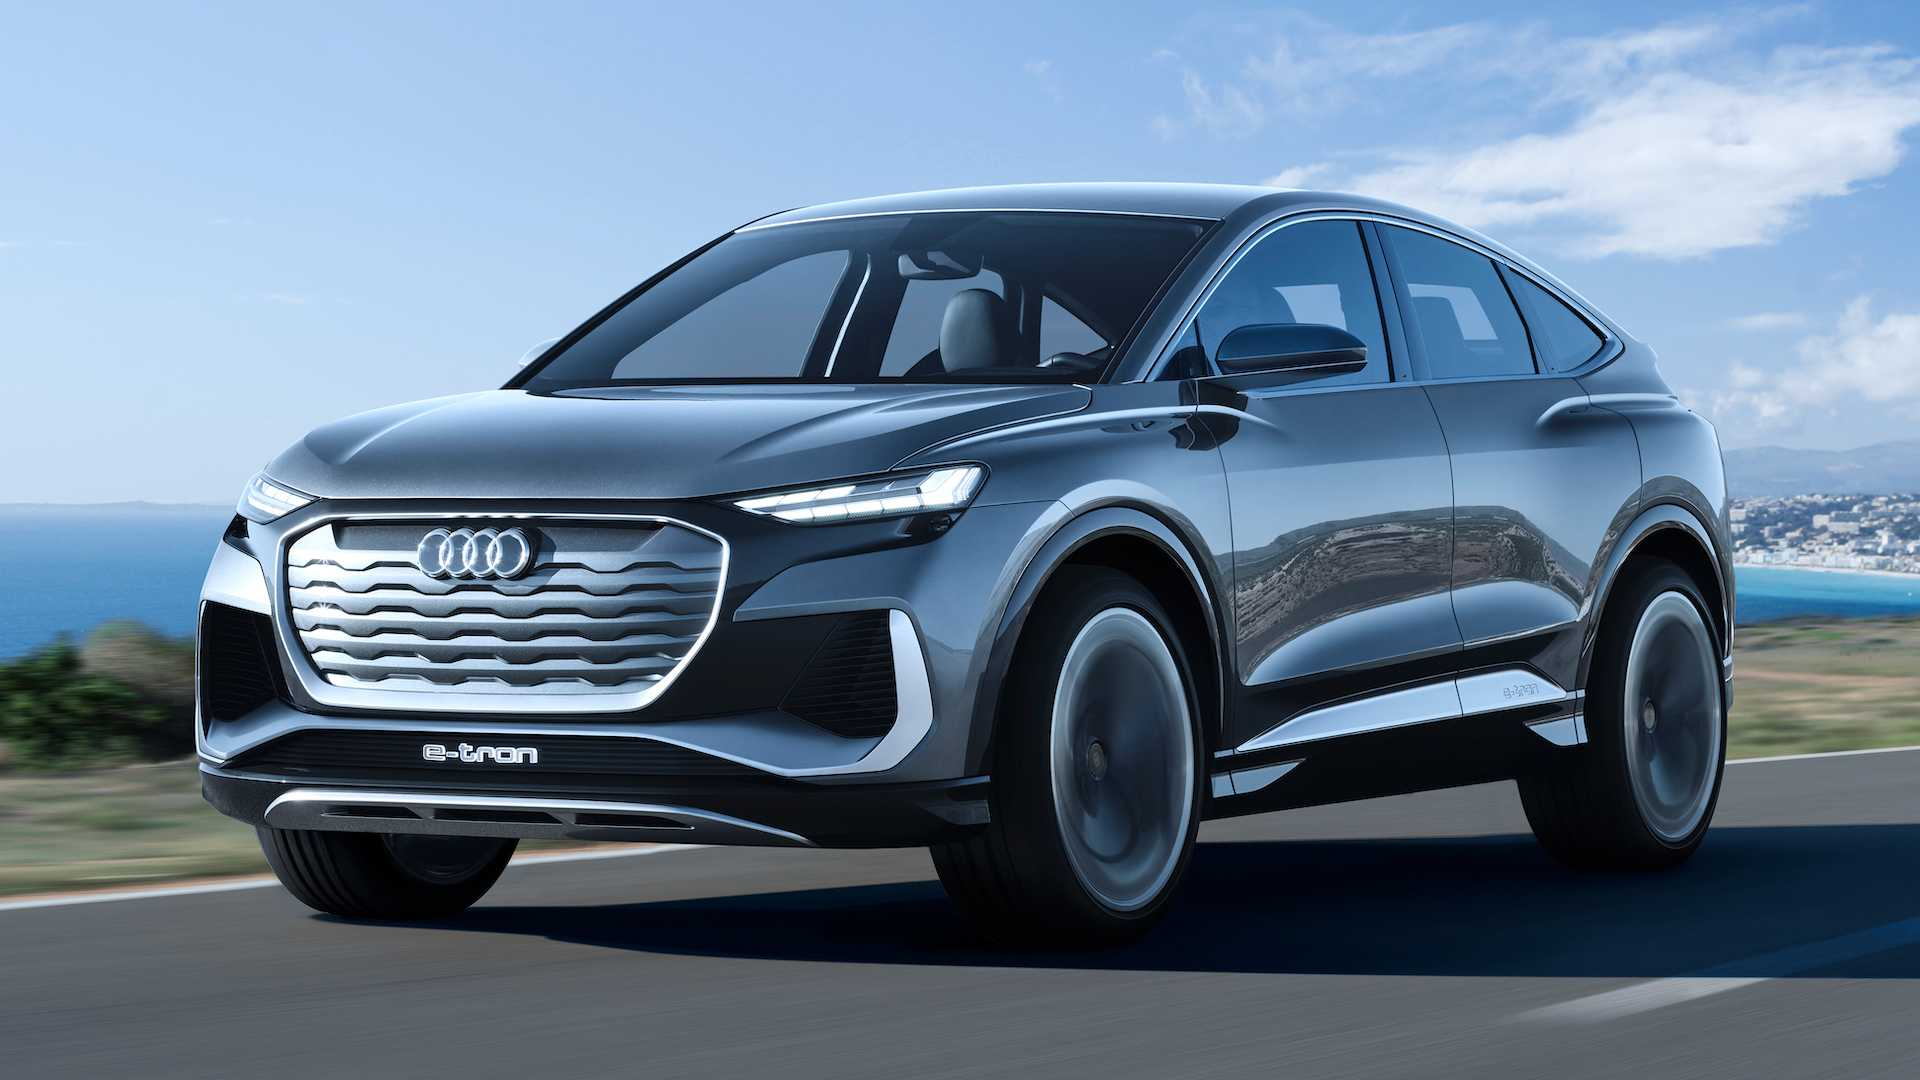 Audi has reported increasing its investment into new car R&D by 40 percent. The invested amount will rise to €15 billion in the next five years, €10 billion out of it dedicated to electrified vehicles.